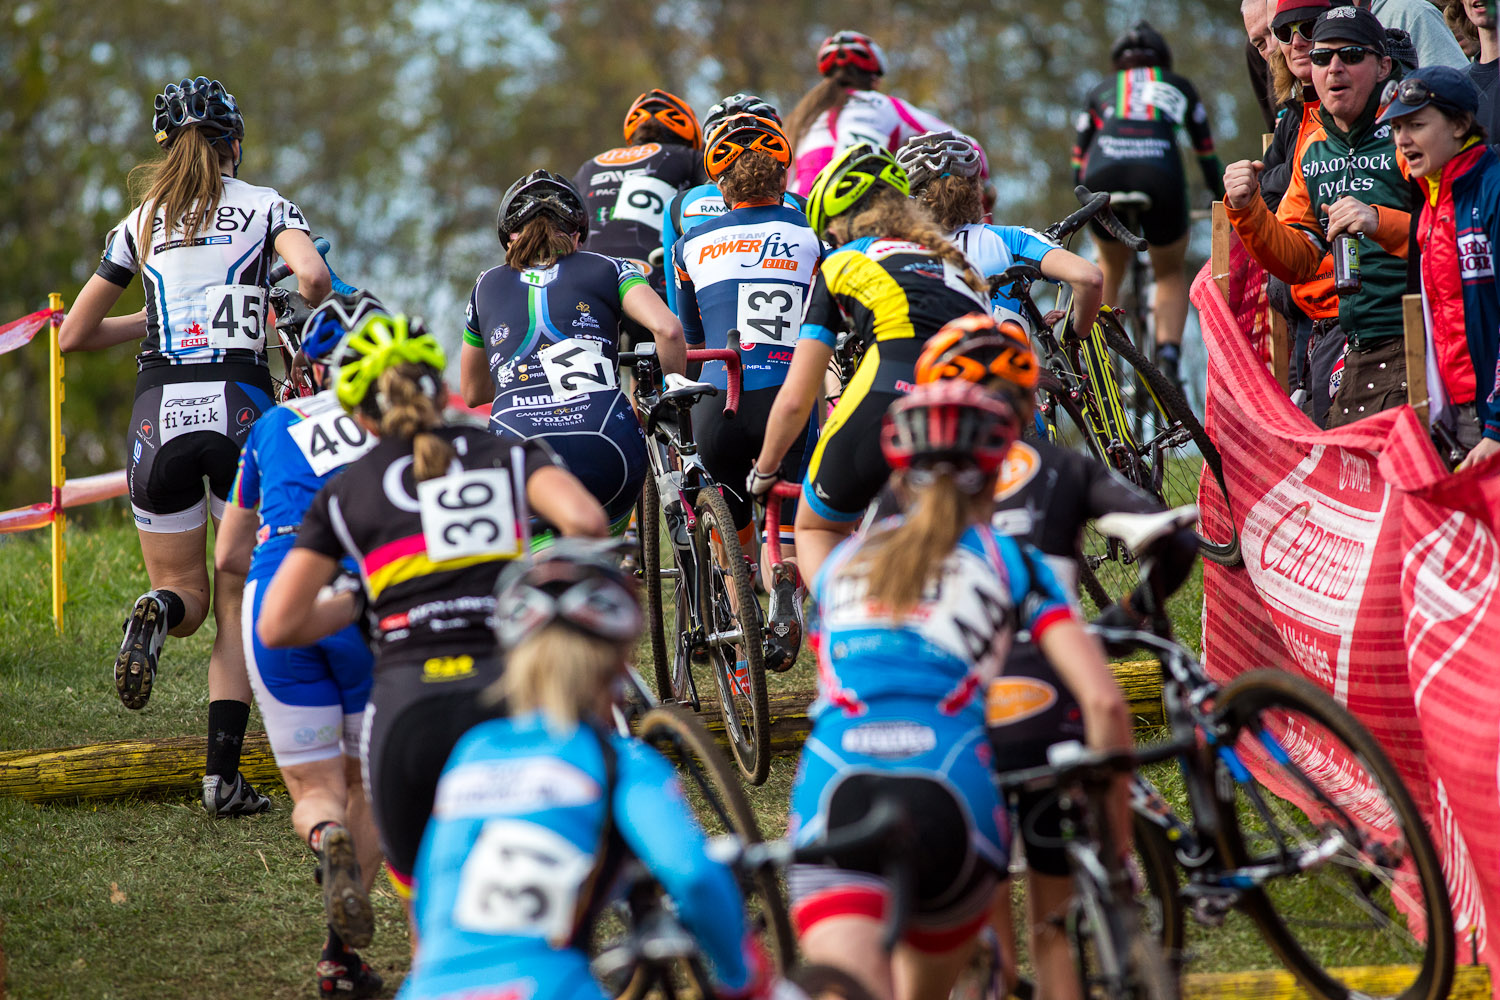 The back half of the women\'s field tackles the run-up. © Kent Baumgardt